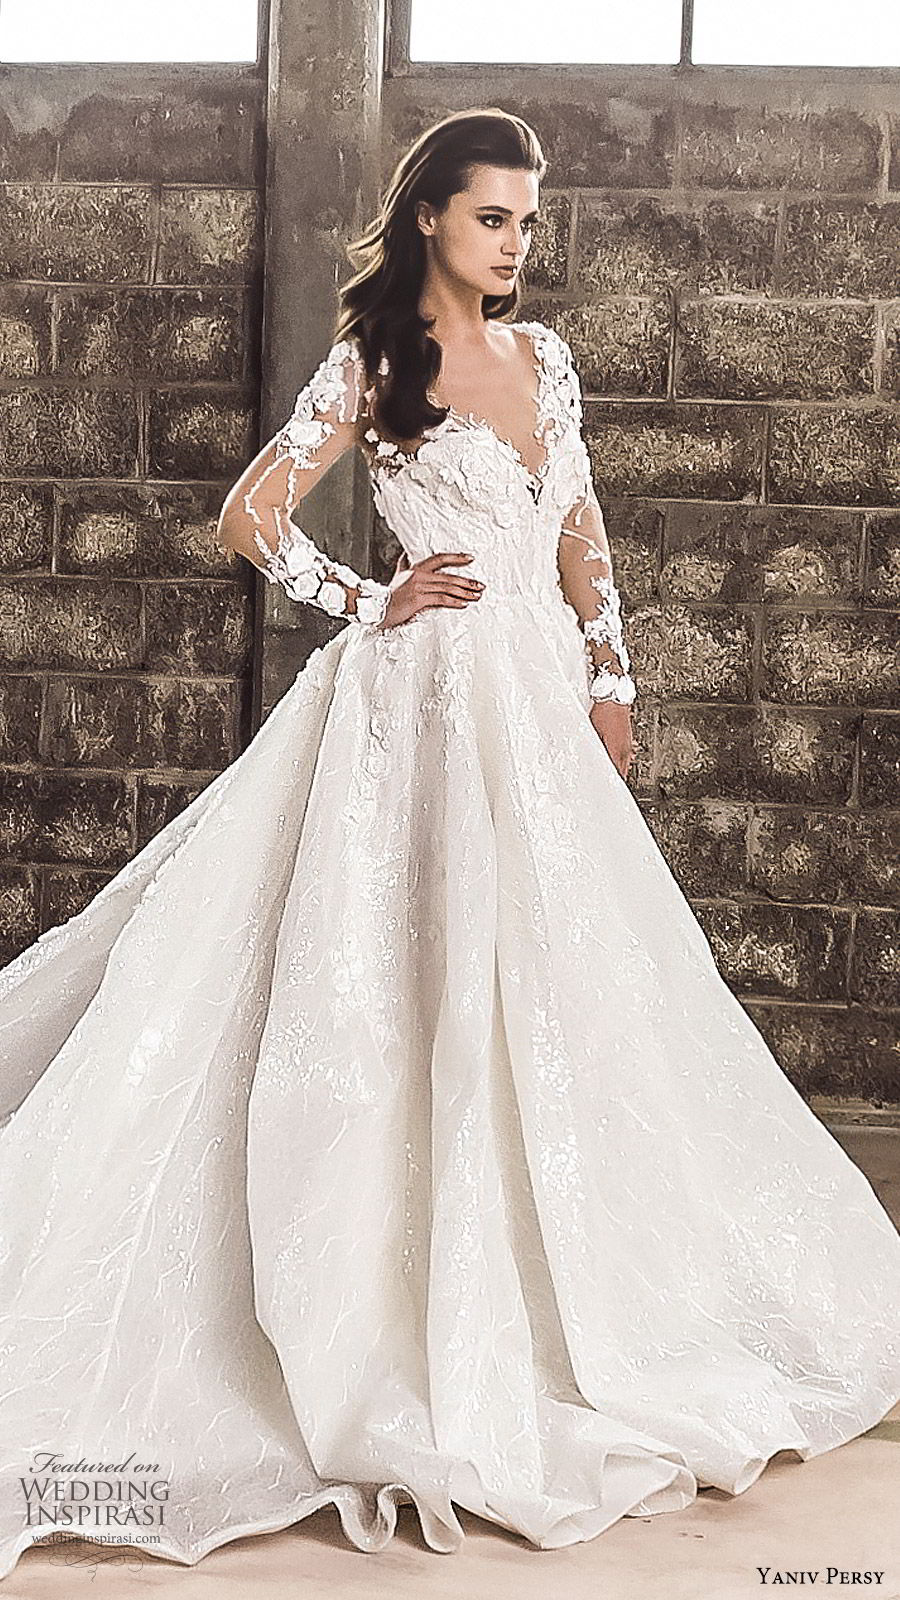 yaniv persy spring 2020 bridal couture illusion long sleeves sheer v neck sweetheart neckline heavily embellished a line ball gown wedding dress (1) cathedral train romantic sv